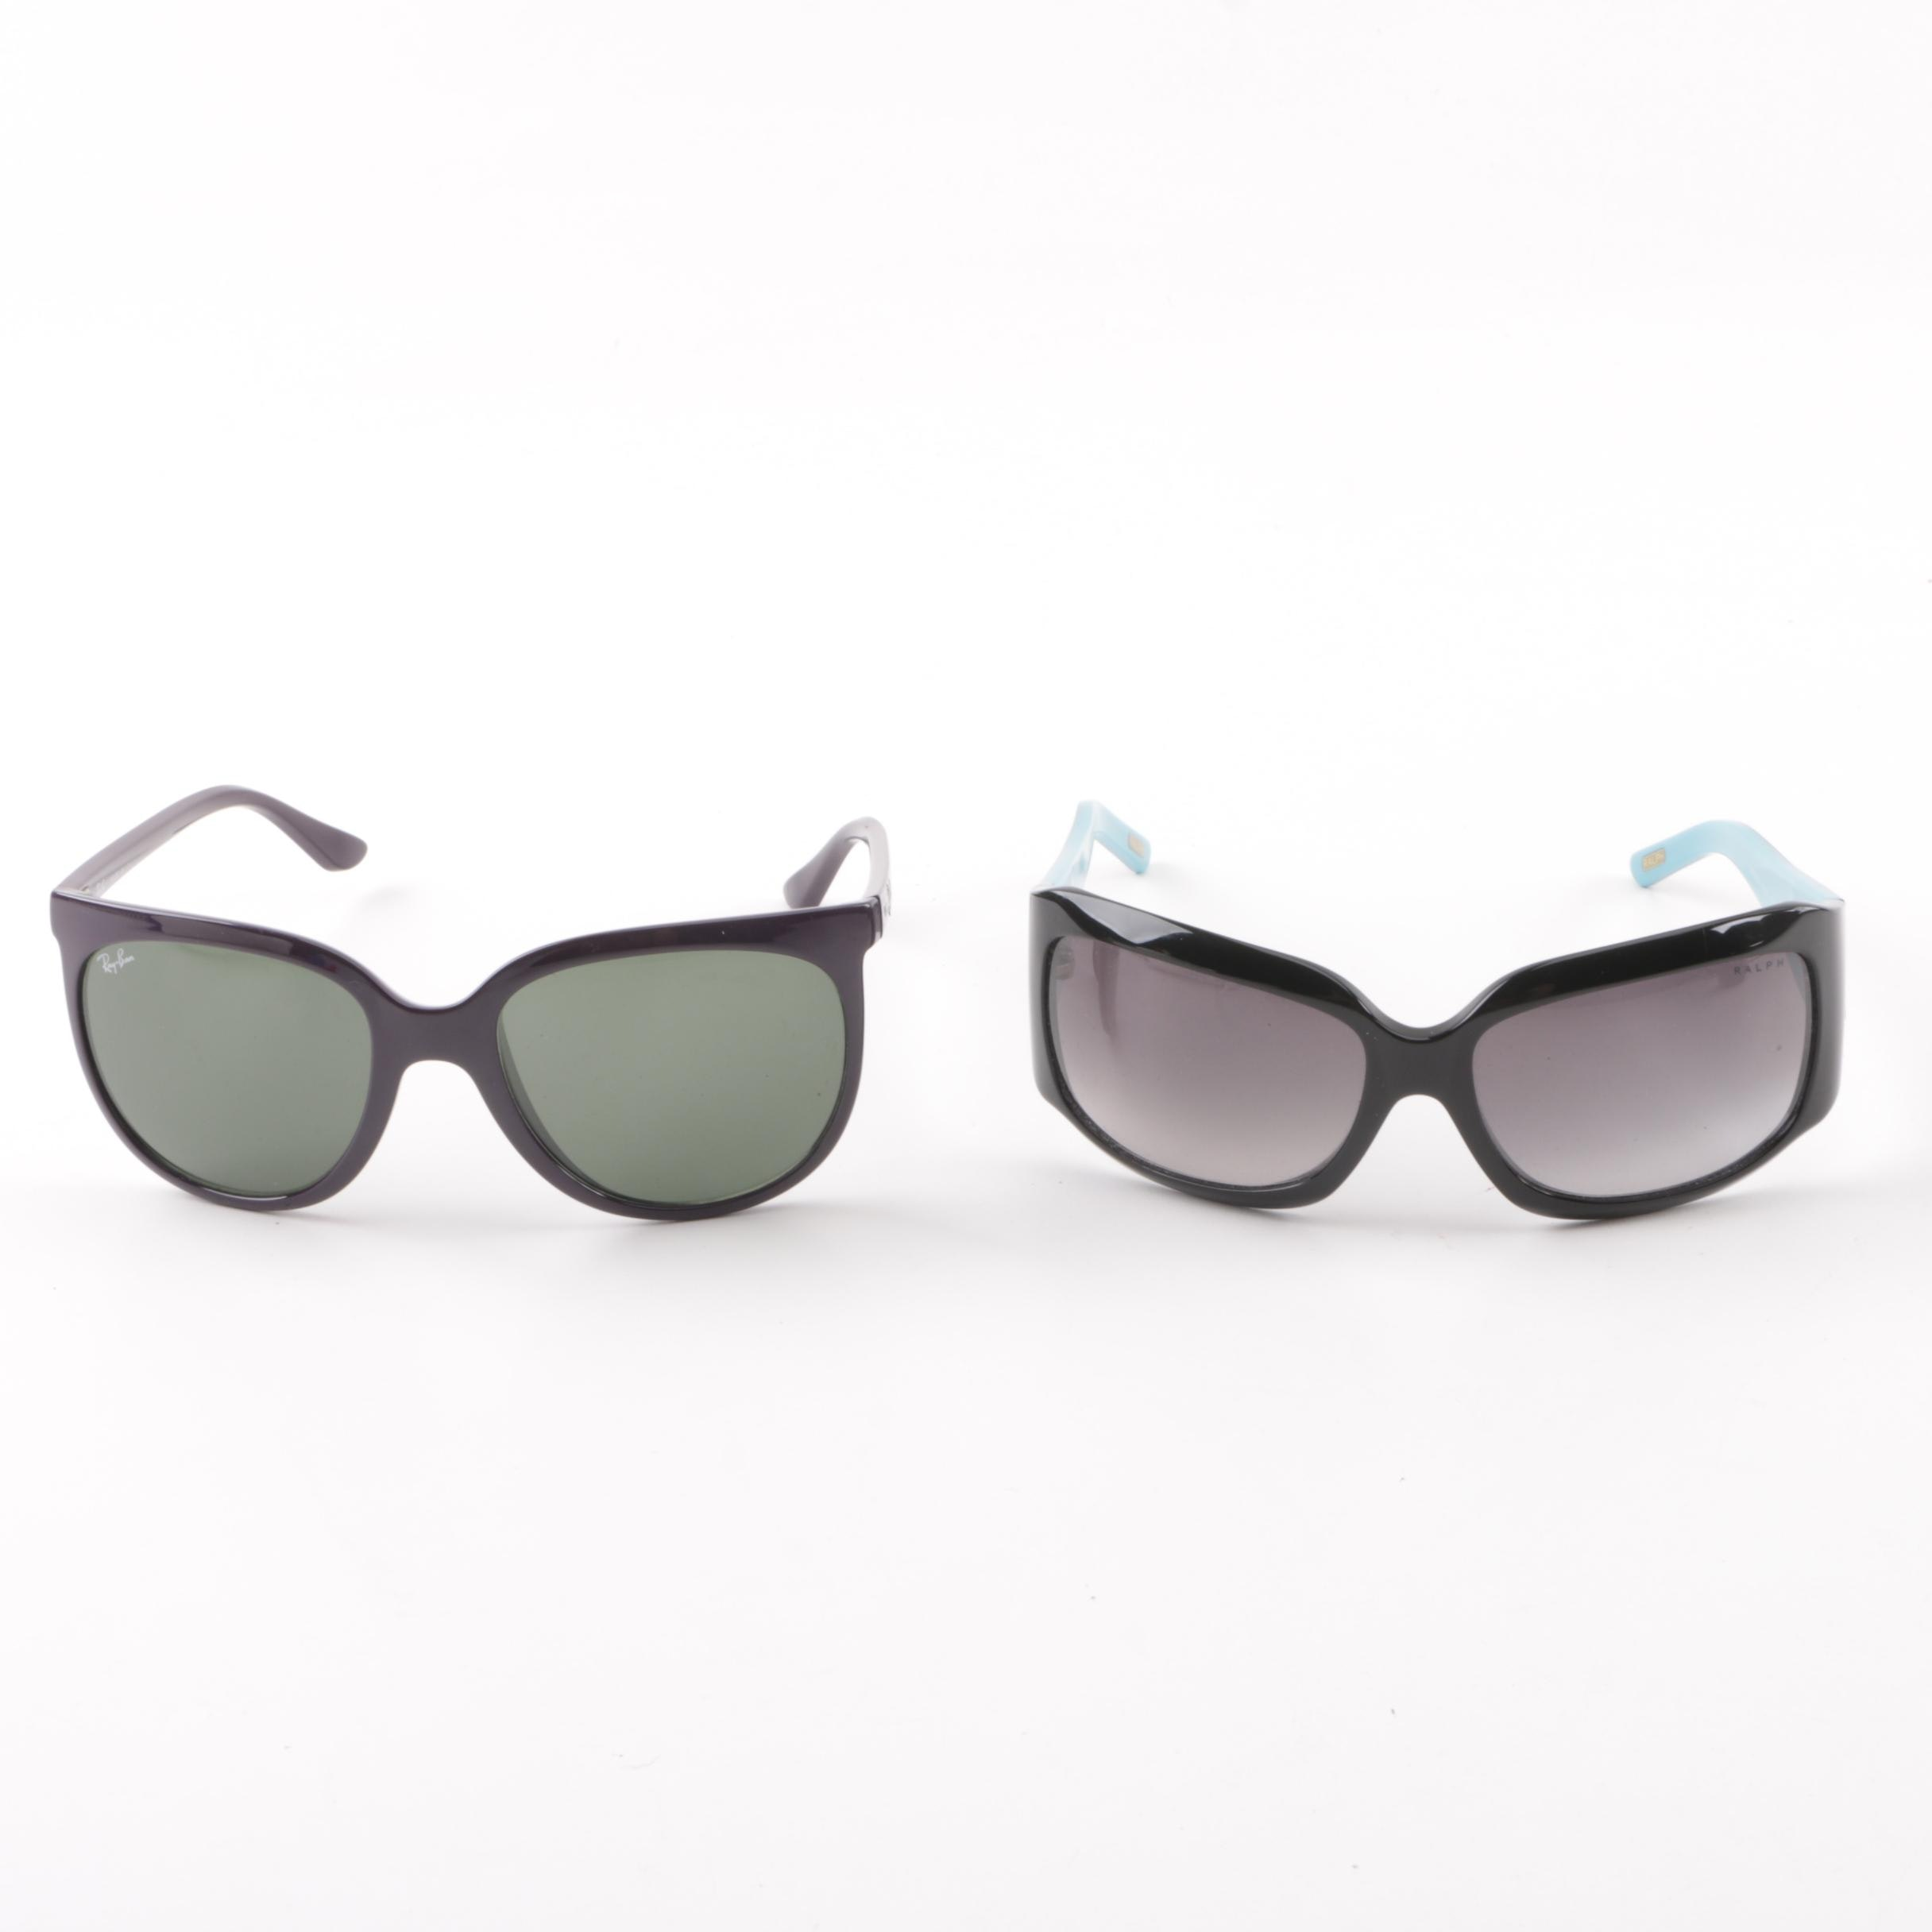 Ray-Ban CATS 1000 and Ralph by Ralph Lauren Sunglasses